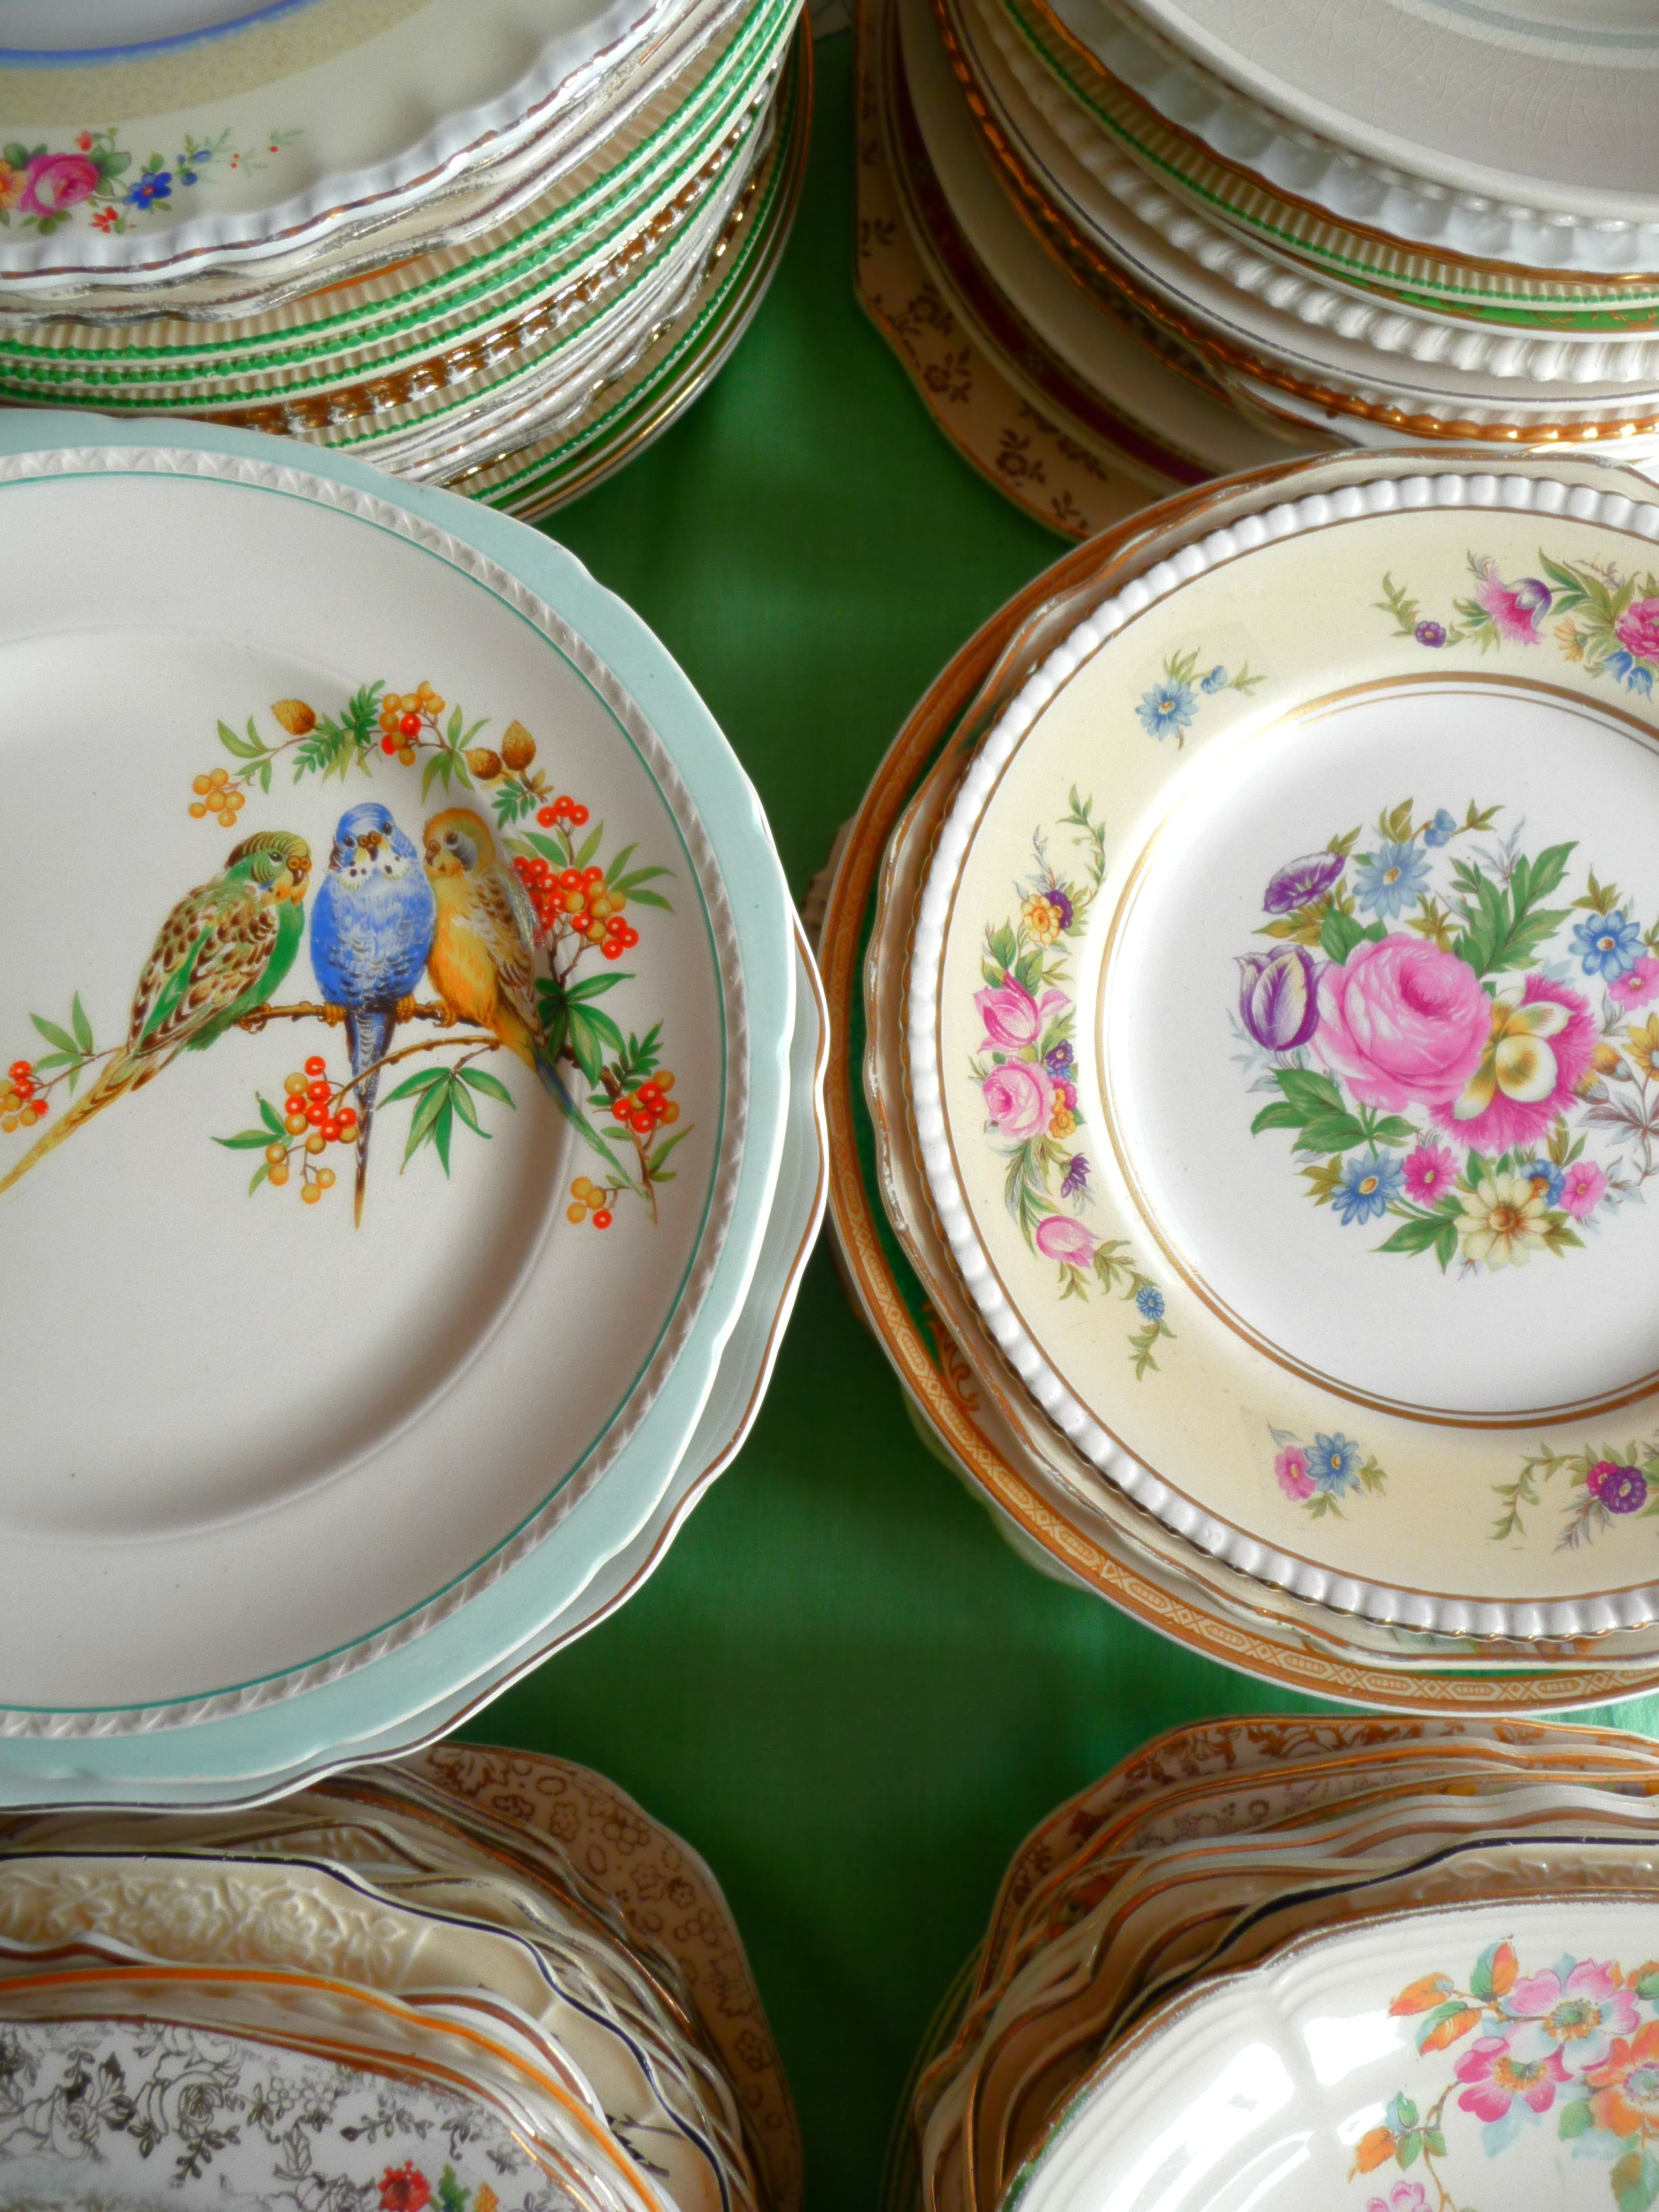 vintage plates u003c3 - for the wedding?!?! Love the mix matched plates! I am going to hit up every antique store for months! & vintage plates u003c3 - for the wedding?!?! Love the mix matched plates ...